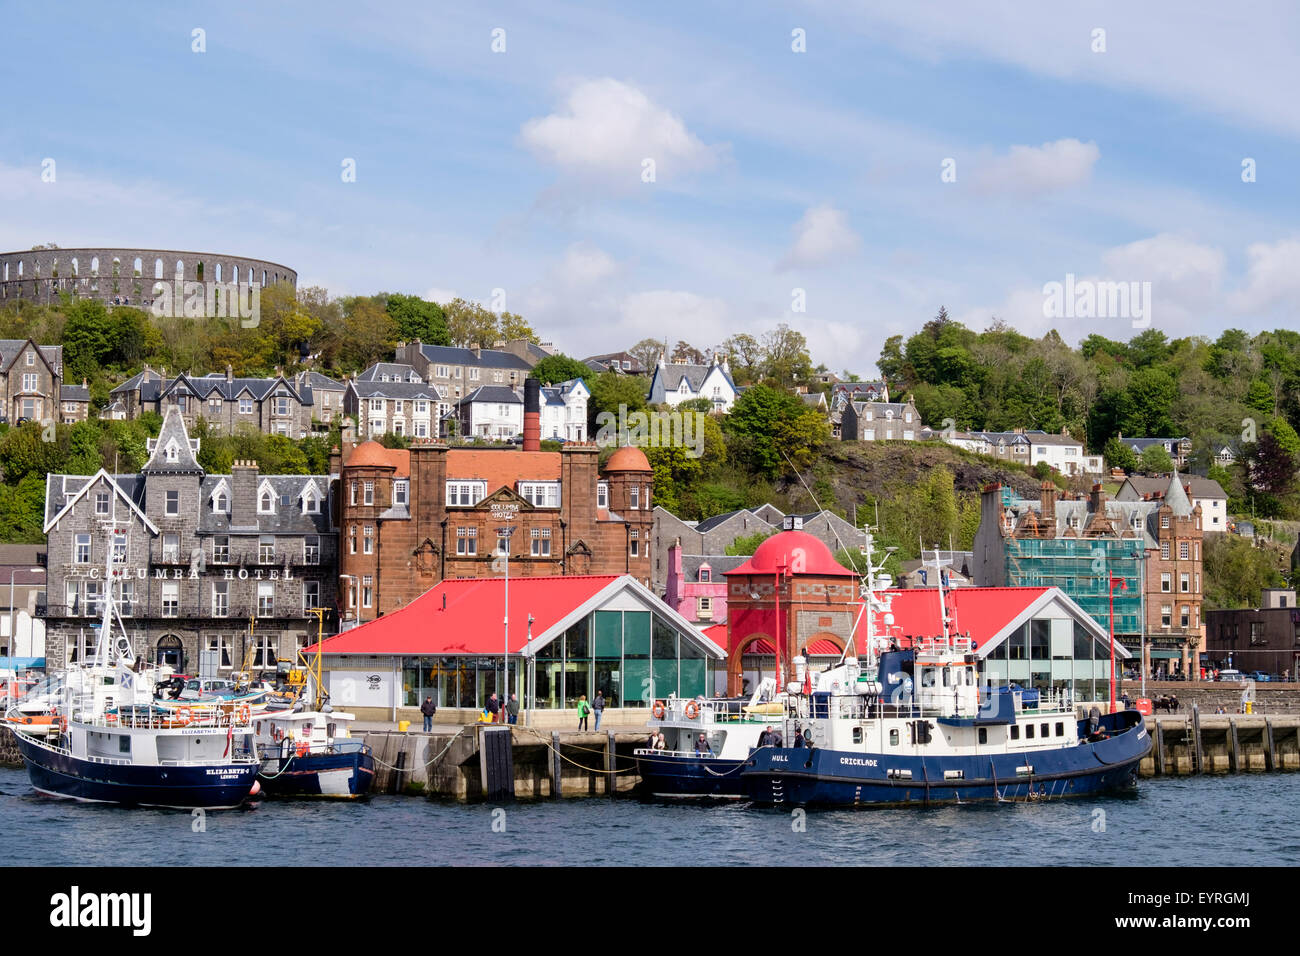 Boats moored by the pier with McCaig's tower folly on hill above in Oban, Argyll and Bute, Scotland, UK, Britain - Stock Image